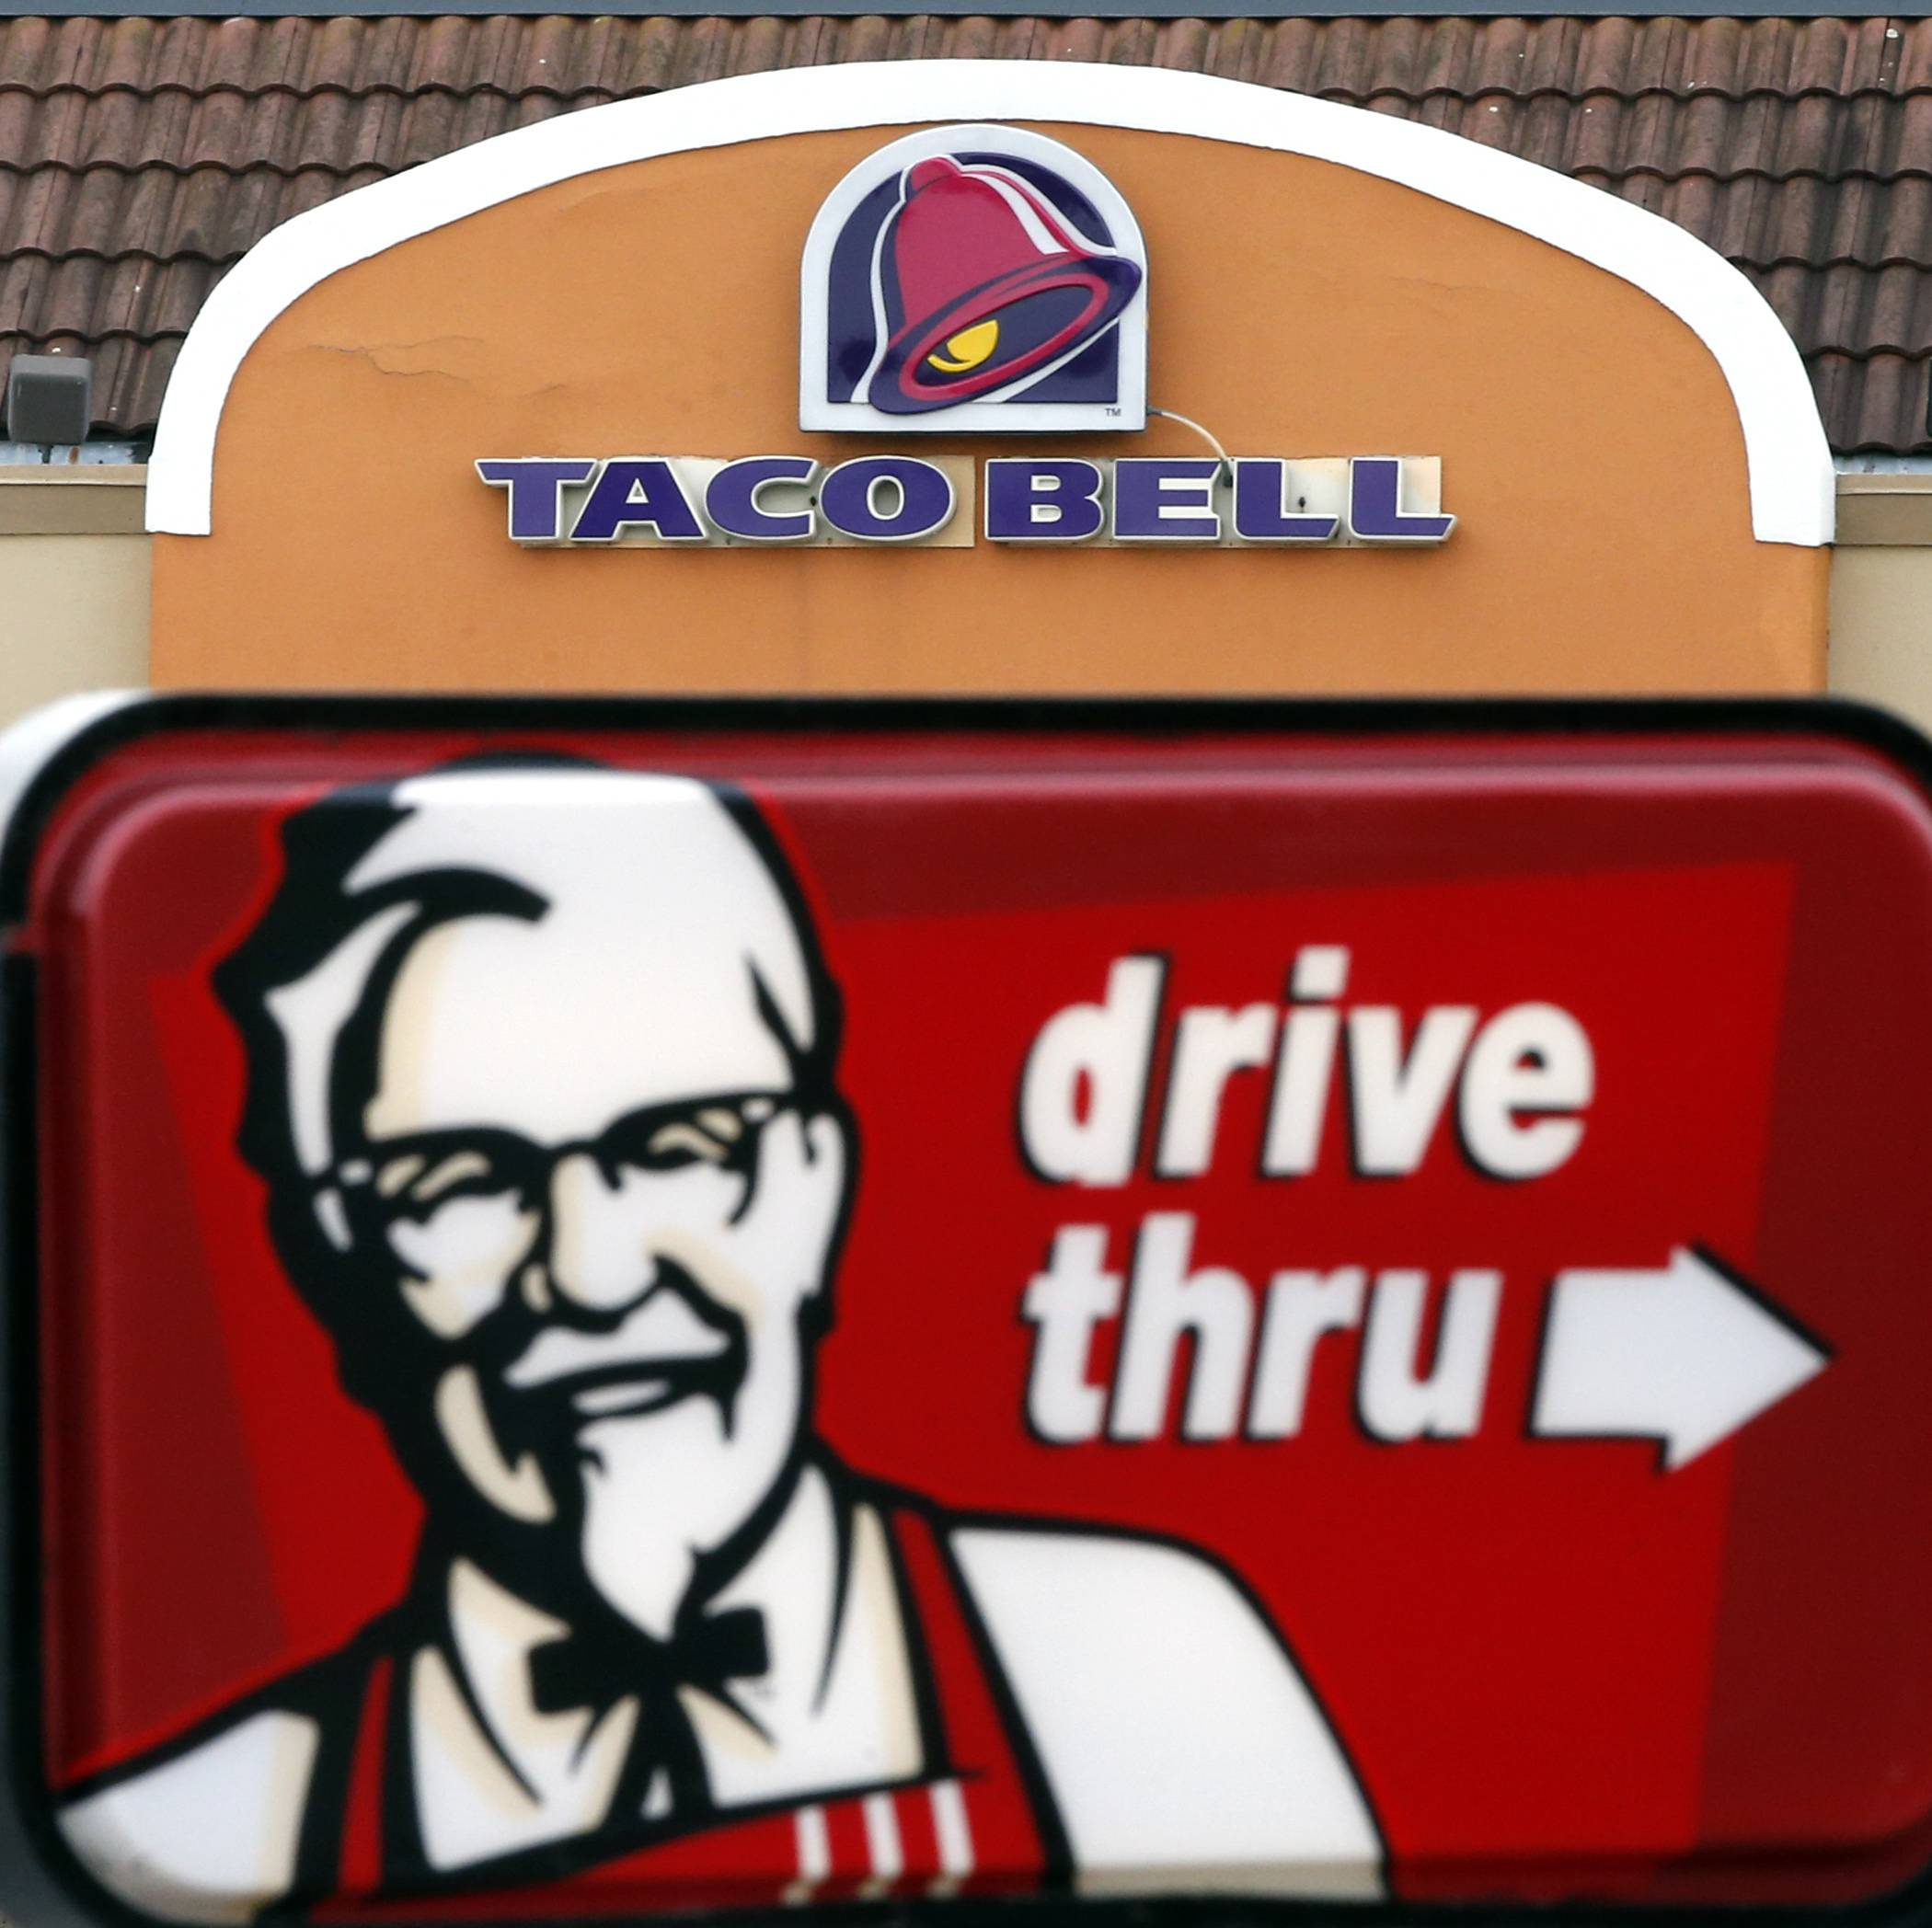 The owner of KFC and Taco Bell is teaming up with Grubhub to expand its delivery business.